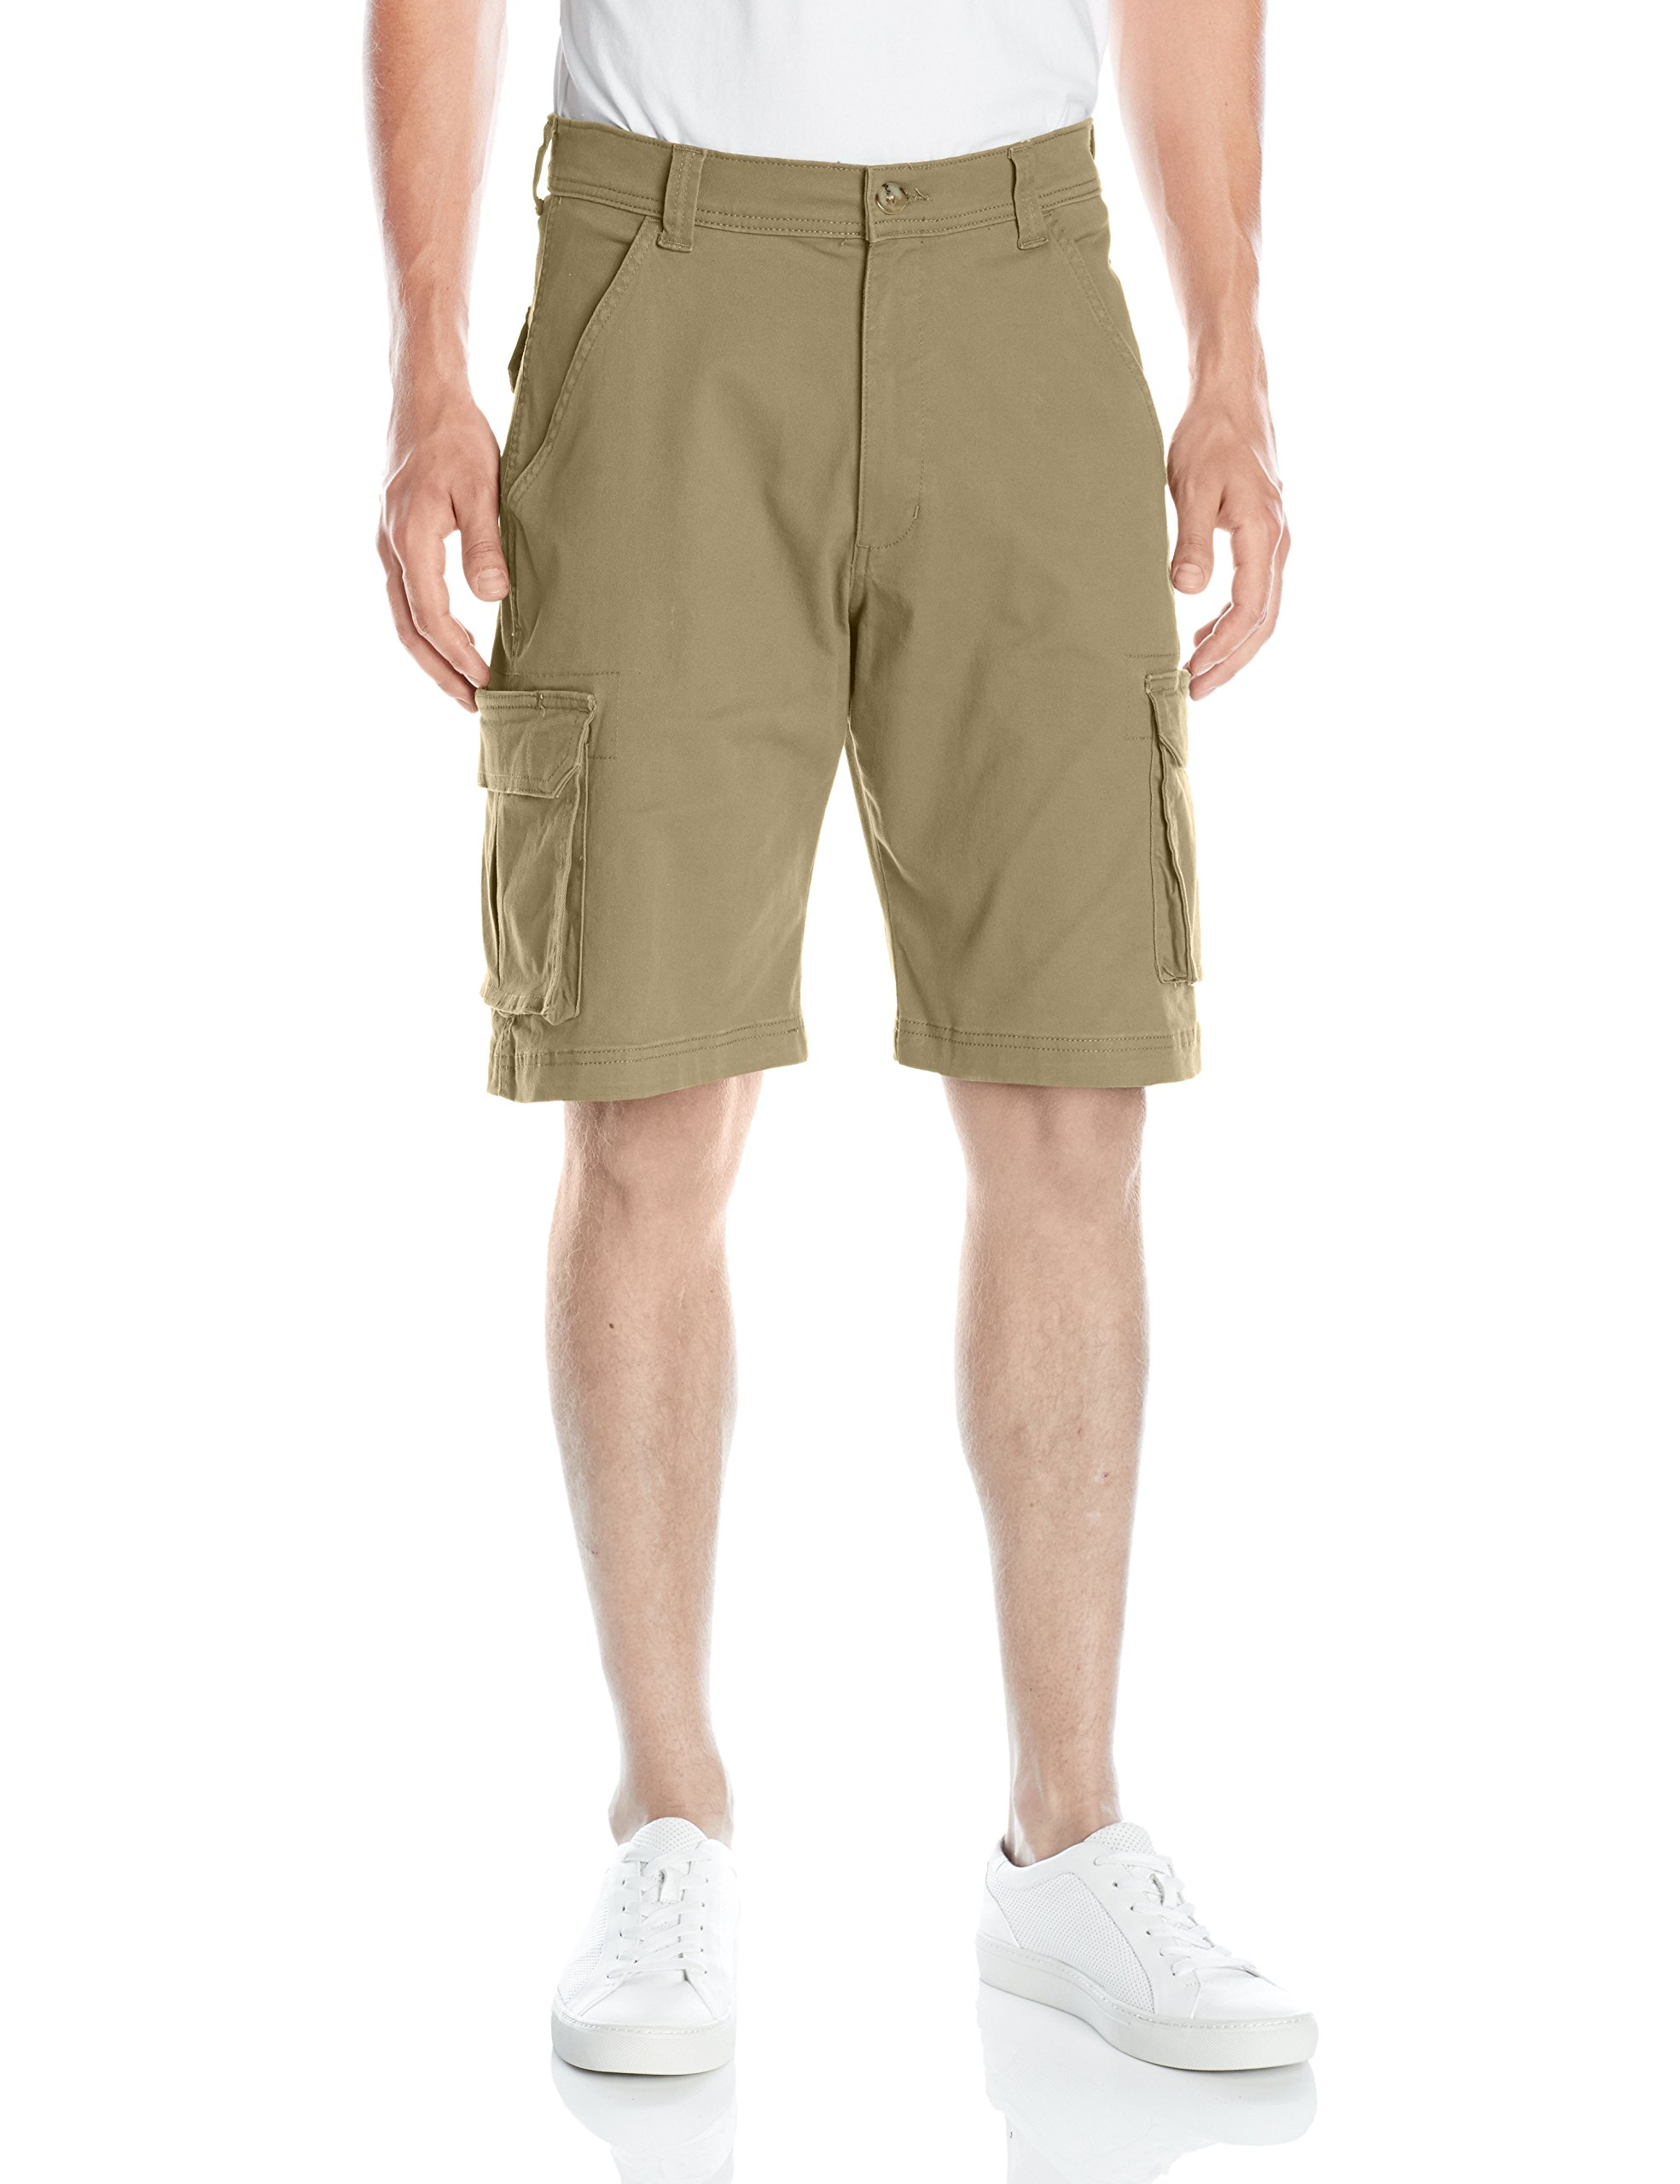 Wrangler Men's Genuine Advanced Comfort Tampa Cargo Short, Khaki, 36